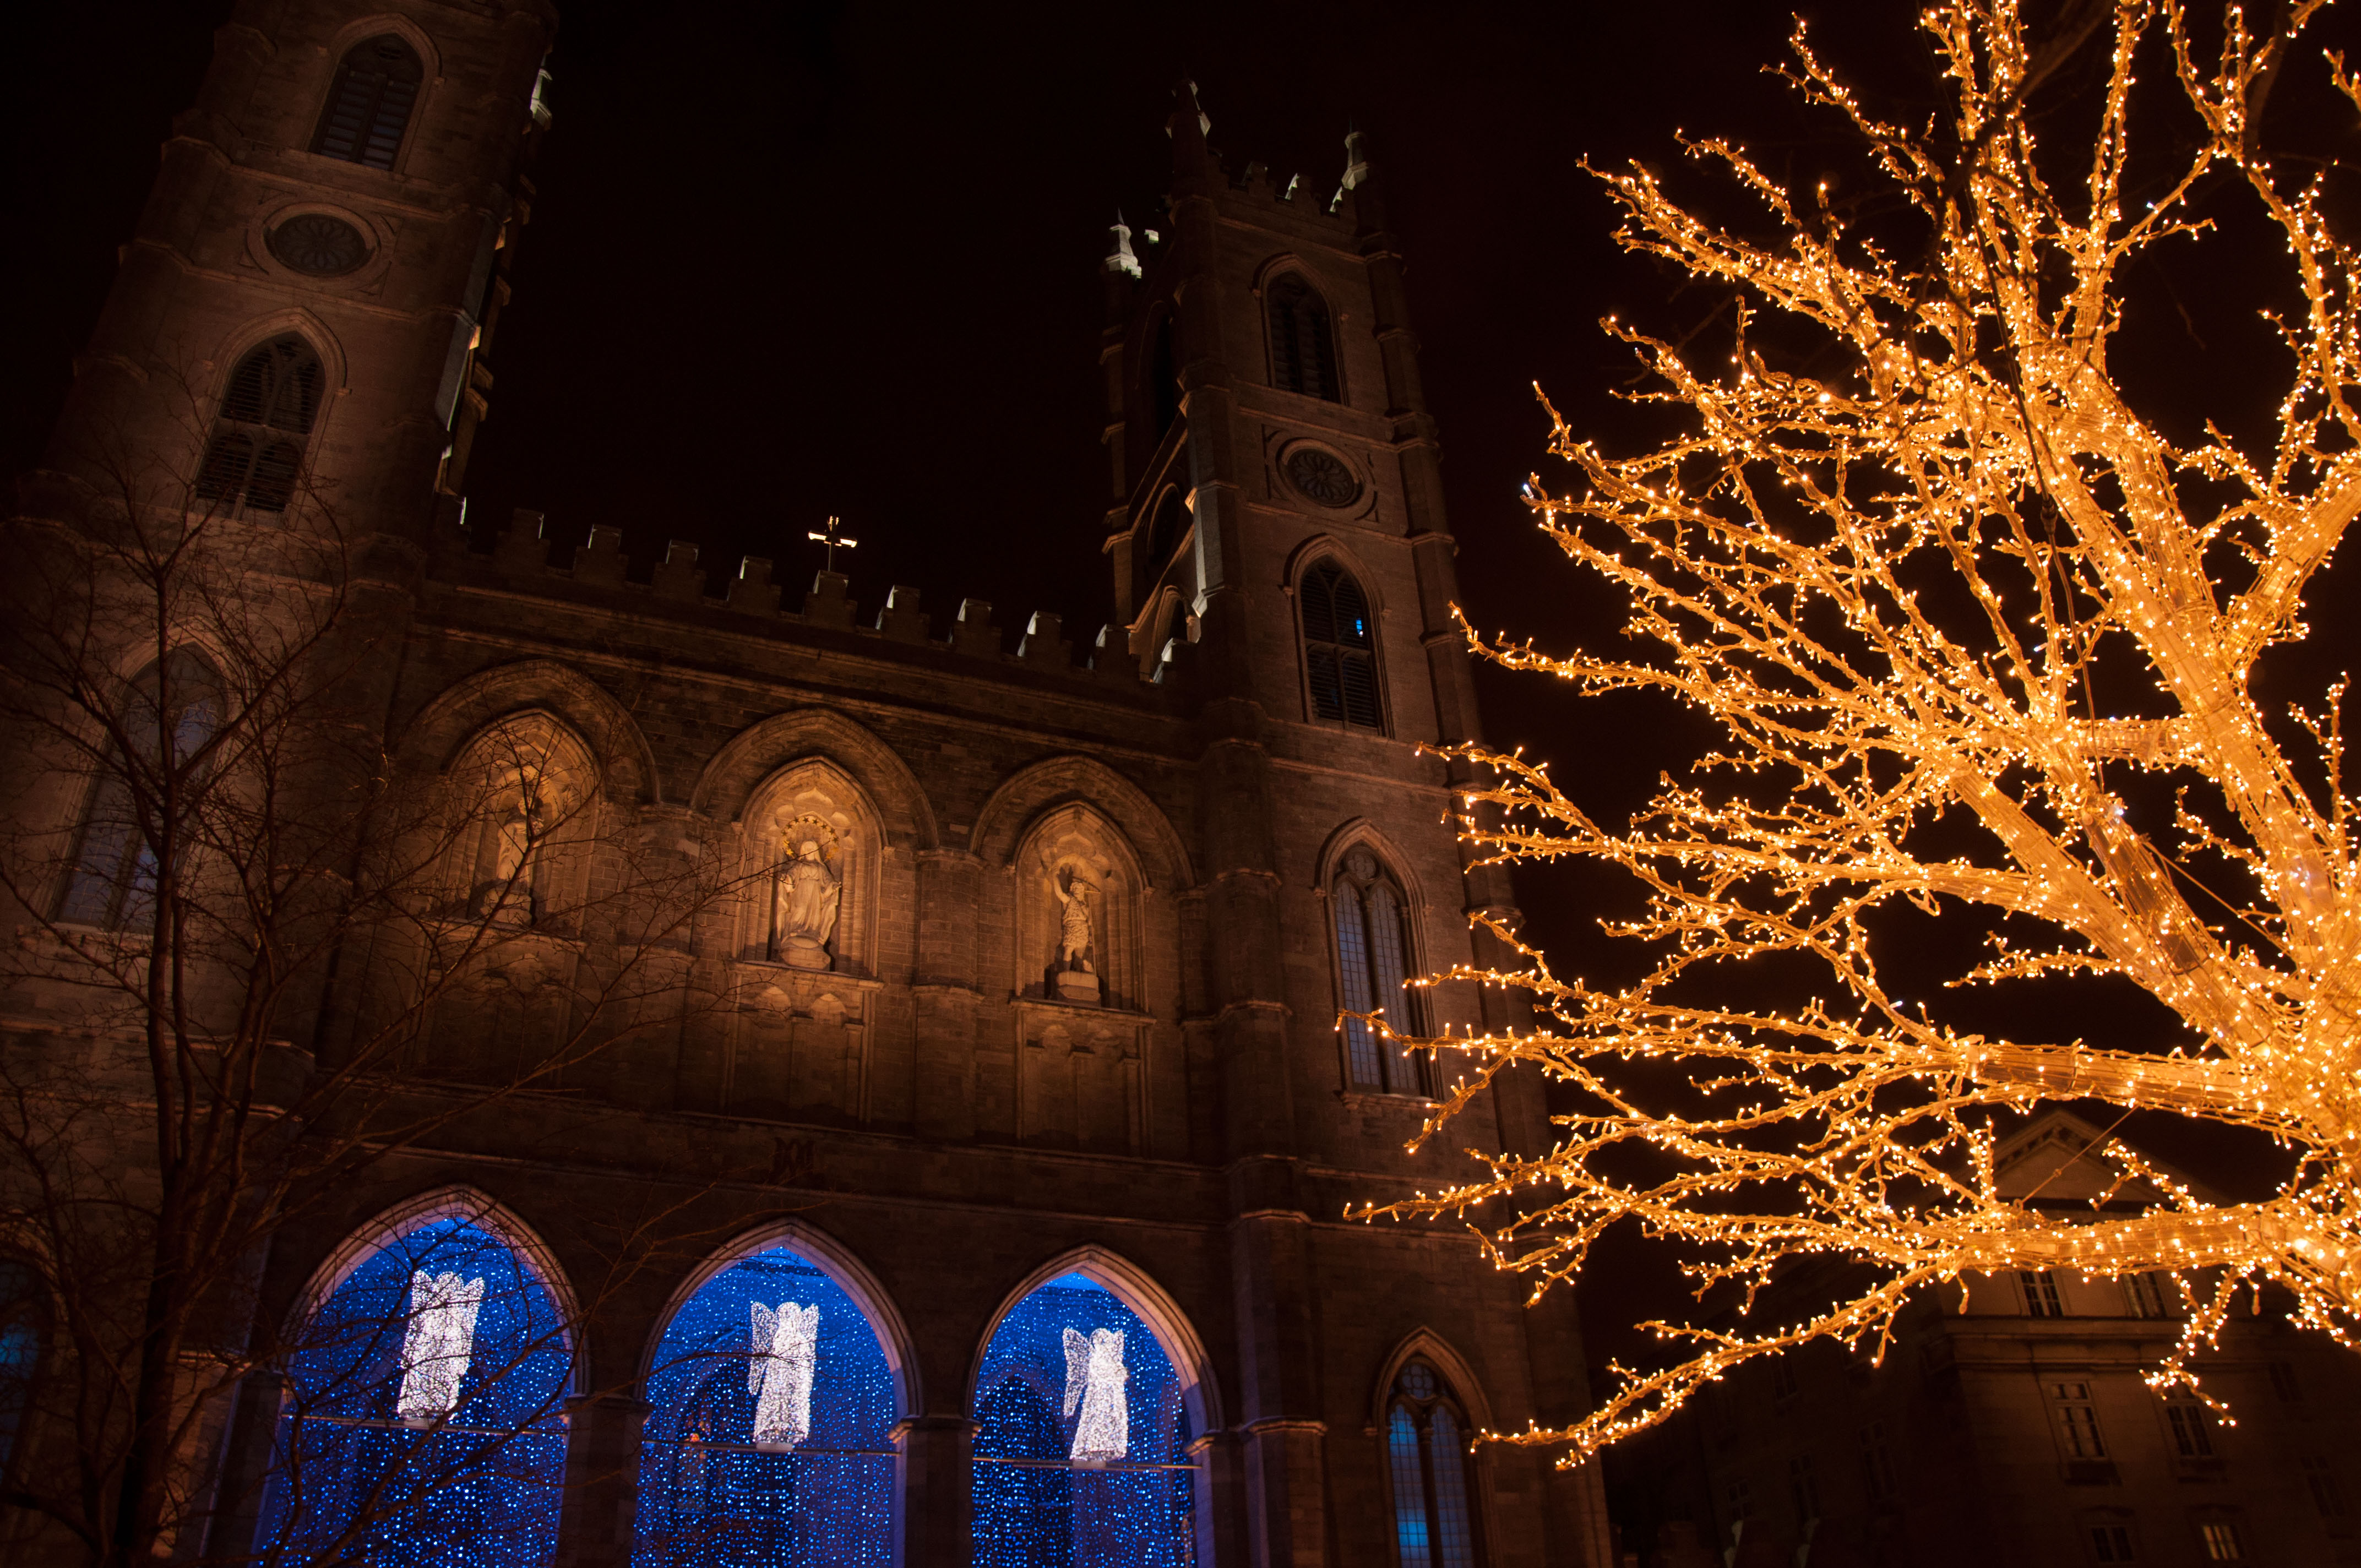 File:Notre Dame at Christmas.jpg - Wikimedia Commons